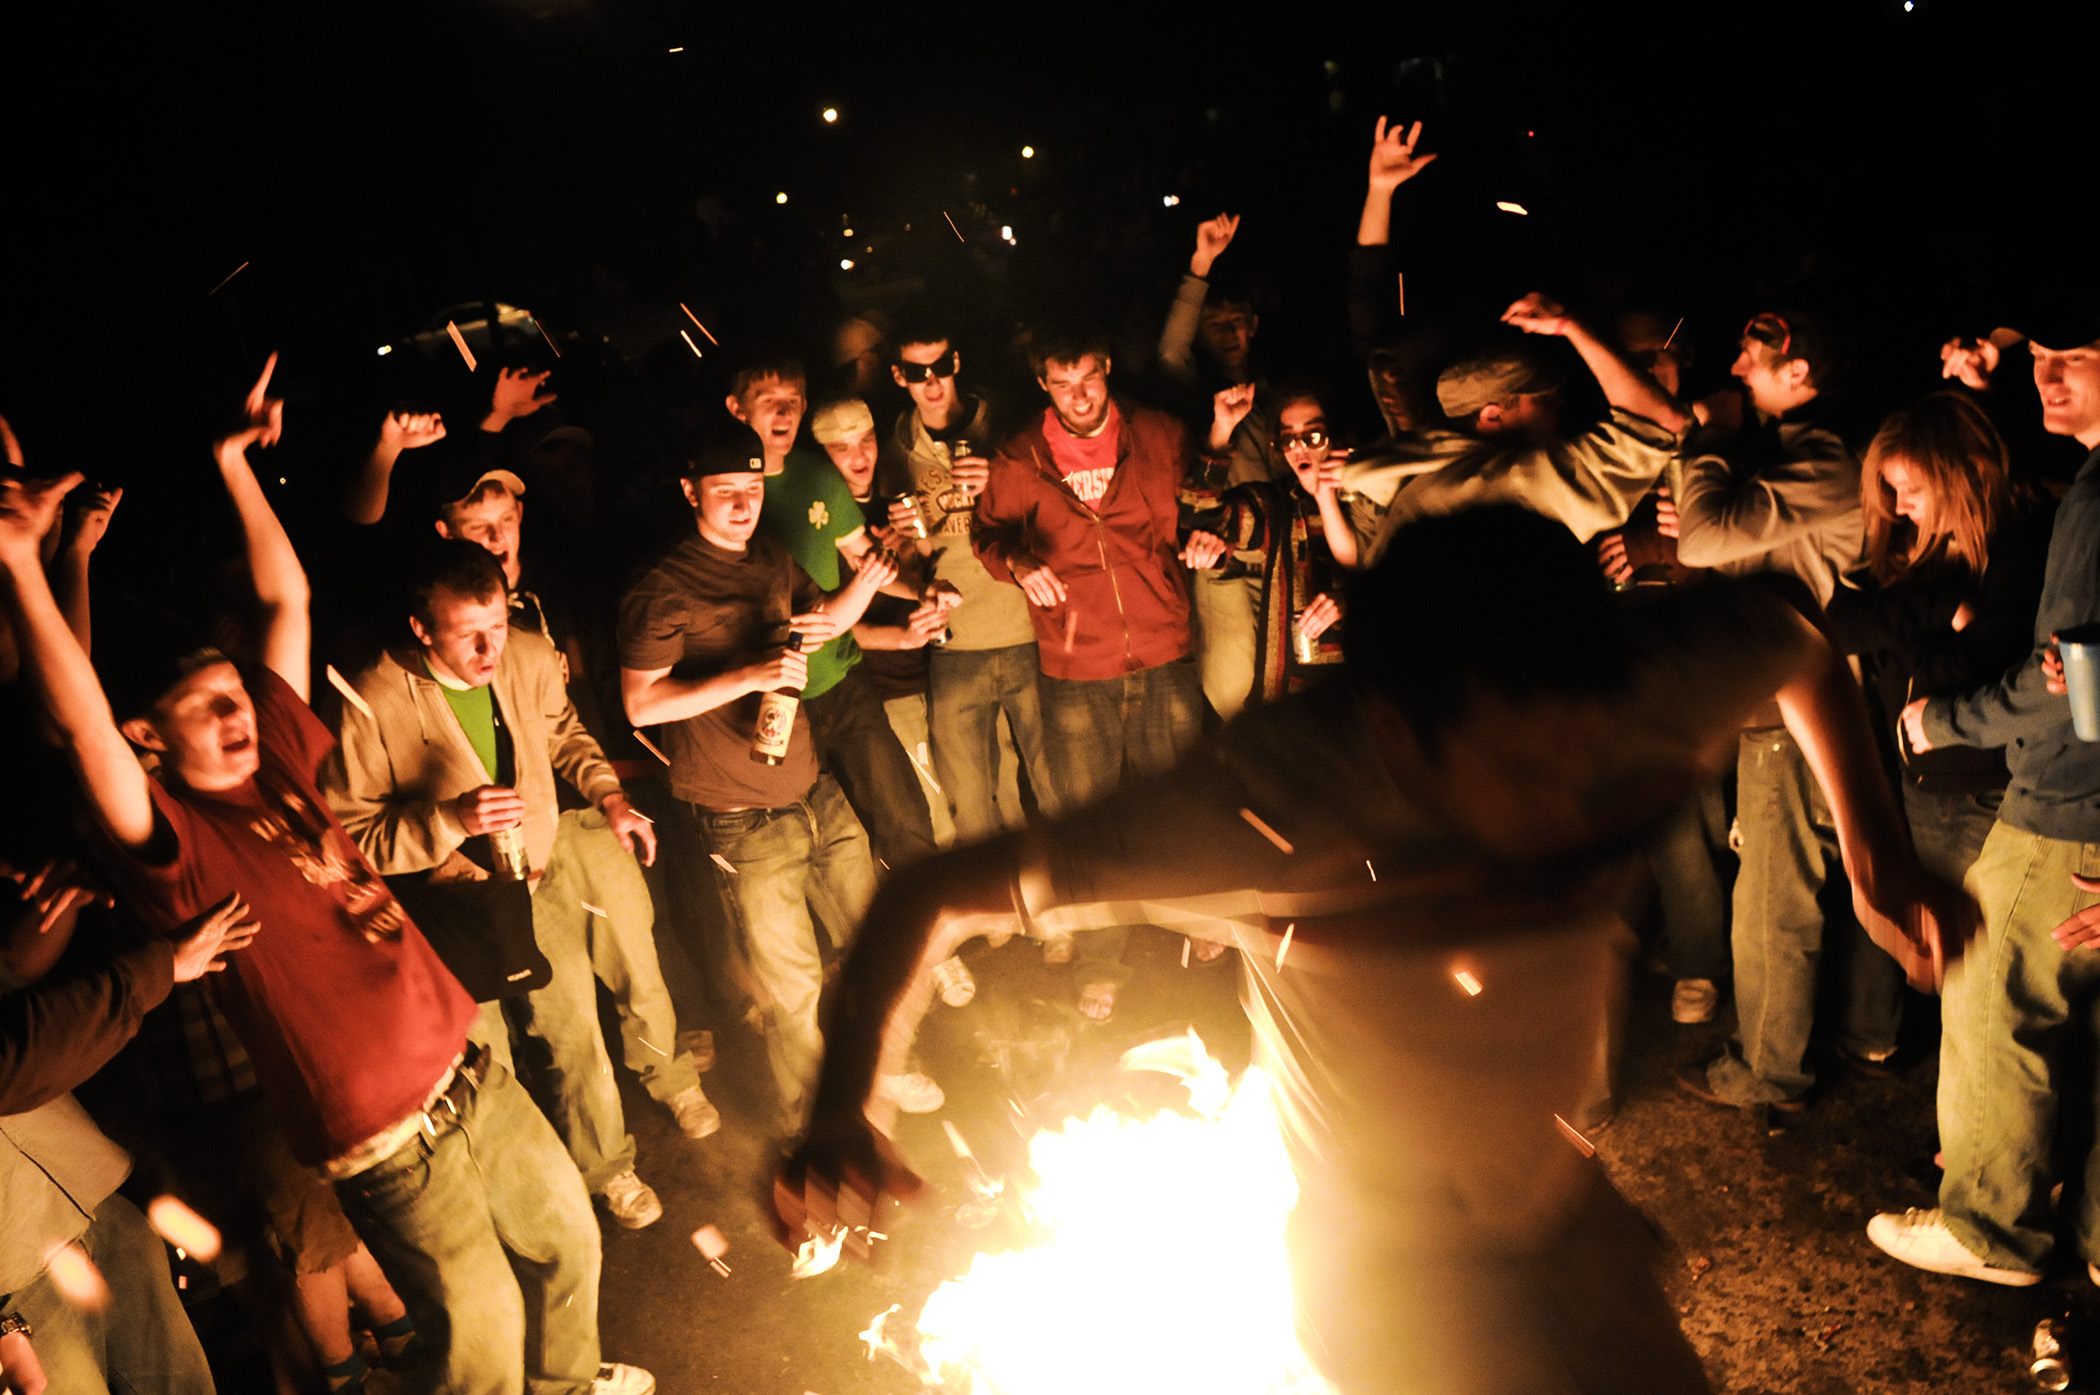 """University of Minnesota students dance around a fire set in the middle of the street during the """"Dinkytown Riots"""" on April 25, 2009 in Minneapolis, MN. The riot broke out during the school's Spring Jam celebration, resulting in the Minneapolis Police Department using teargas and pepper spray to disperse the crowds."""